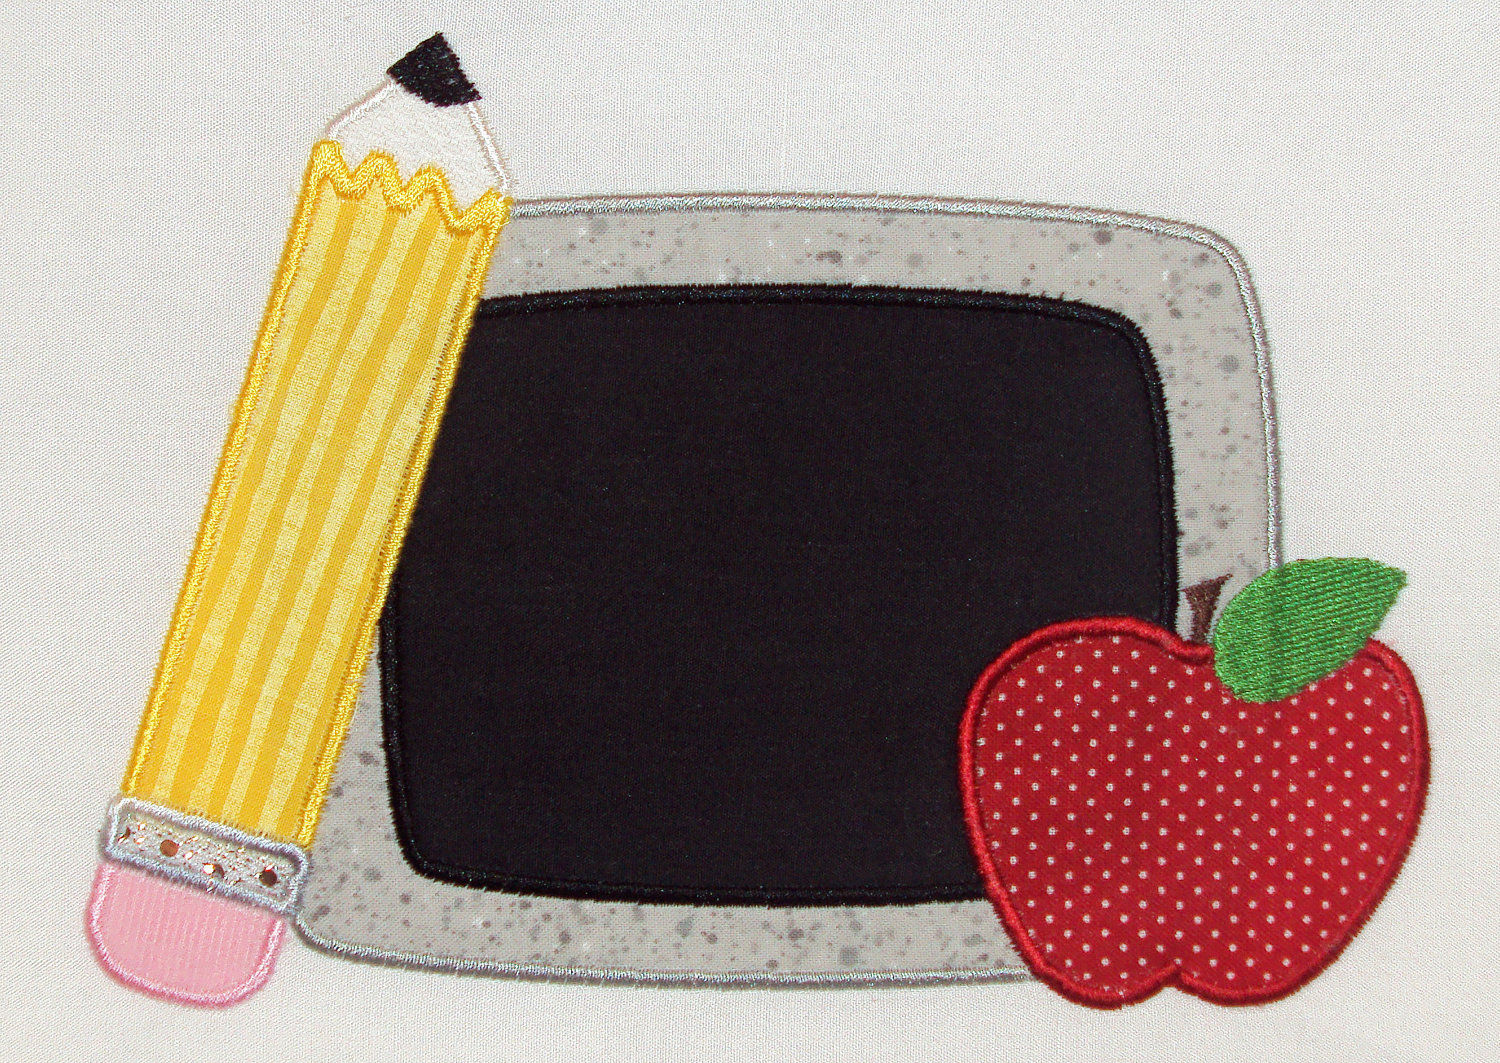 chalkboard applique design